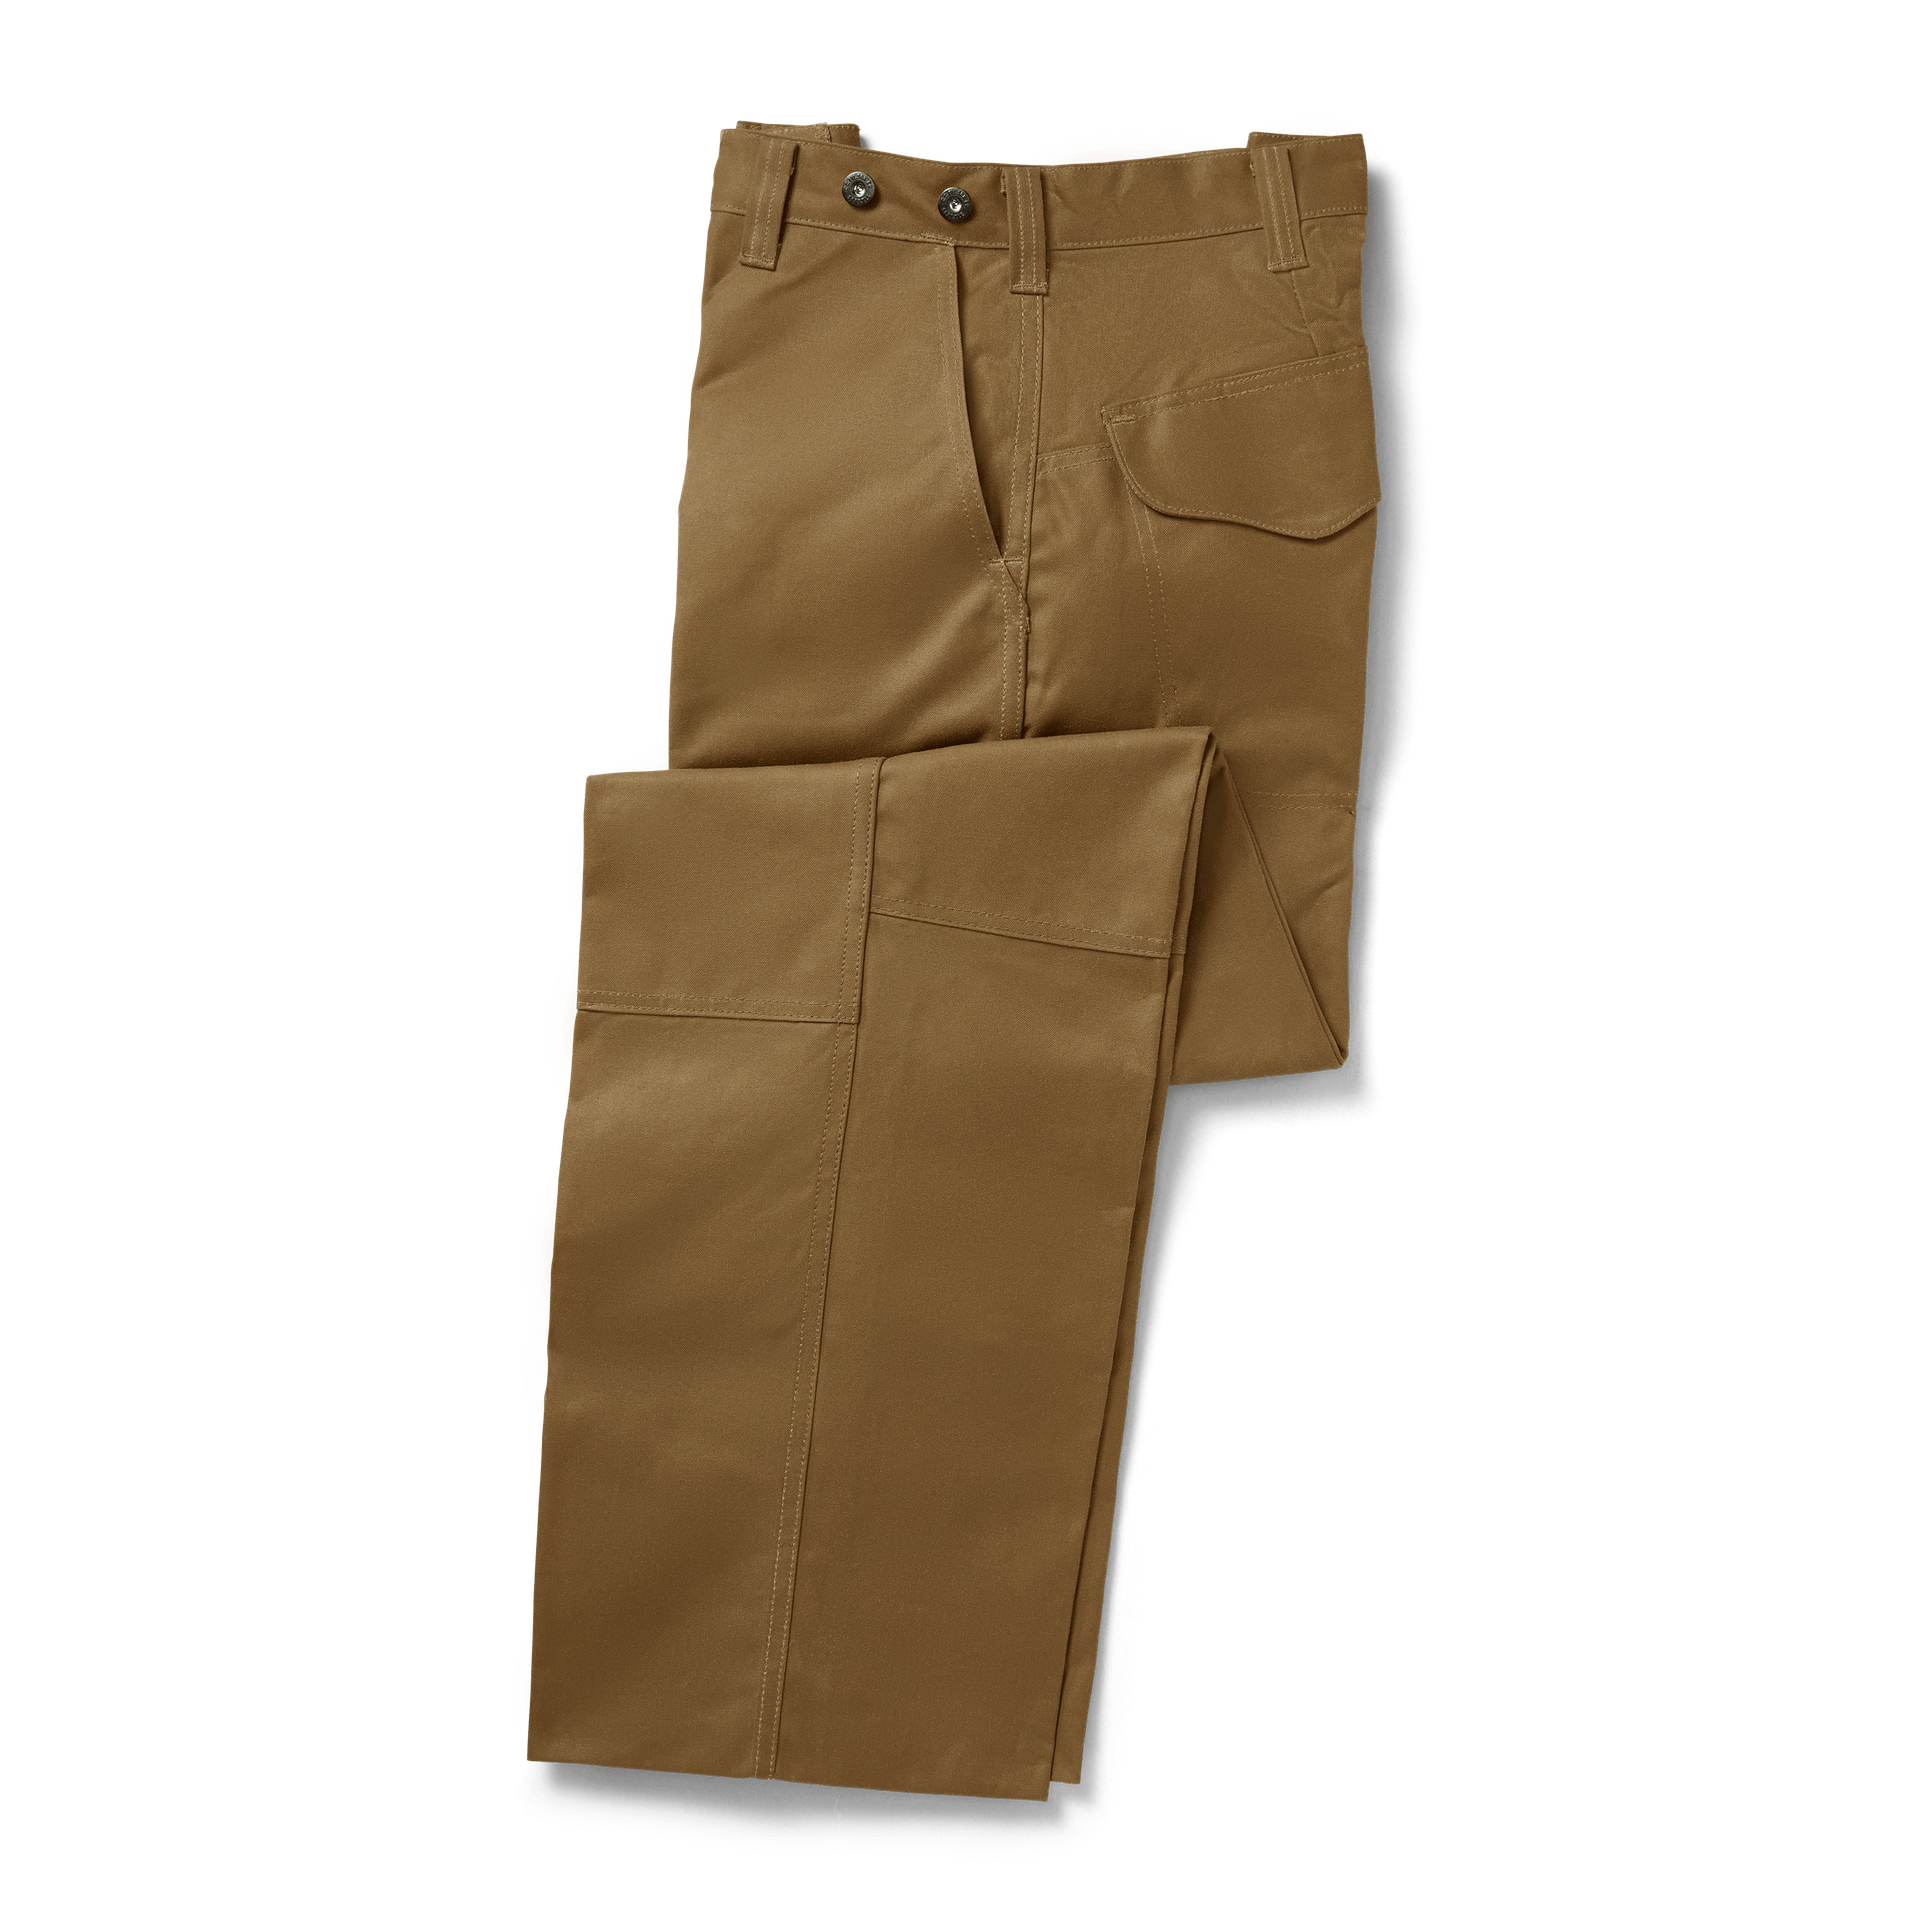 NEW FILSON Double Tin Oil Finish Pants Size 34 Field Hunting USA MADE $215